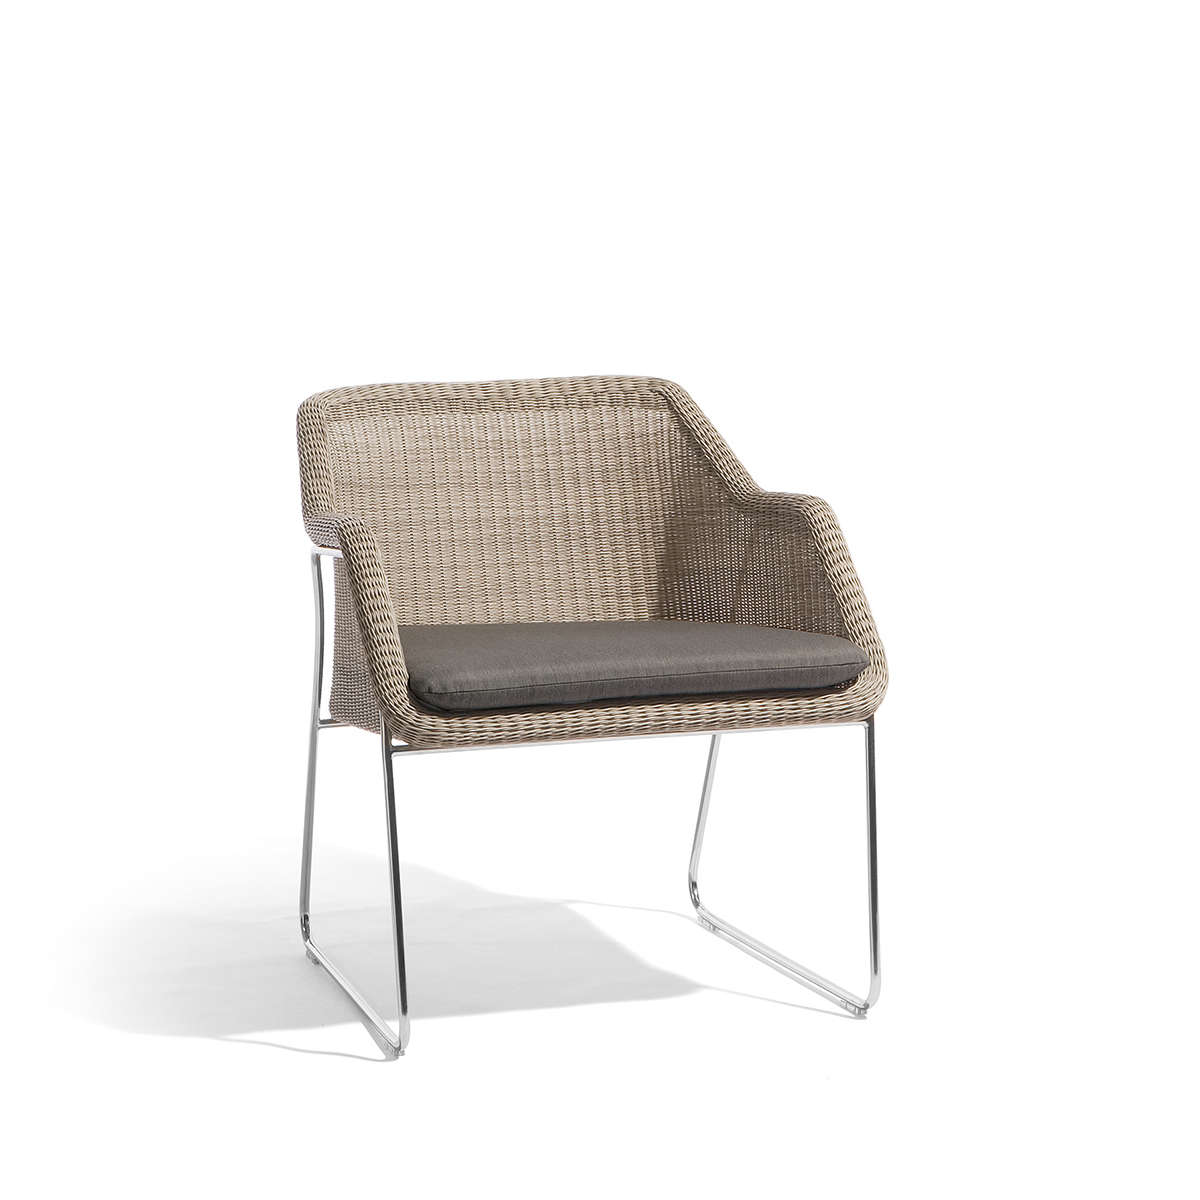 Manutti Mood Lounge Chair 2